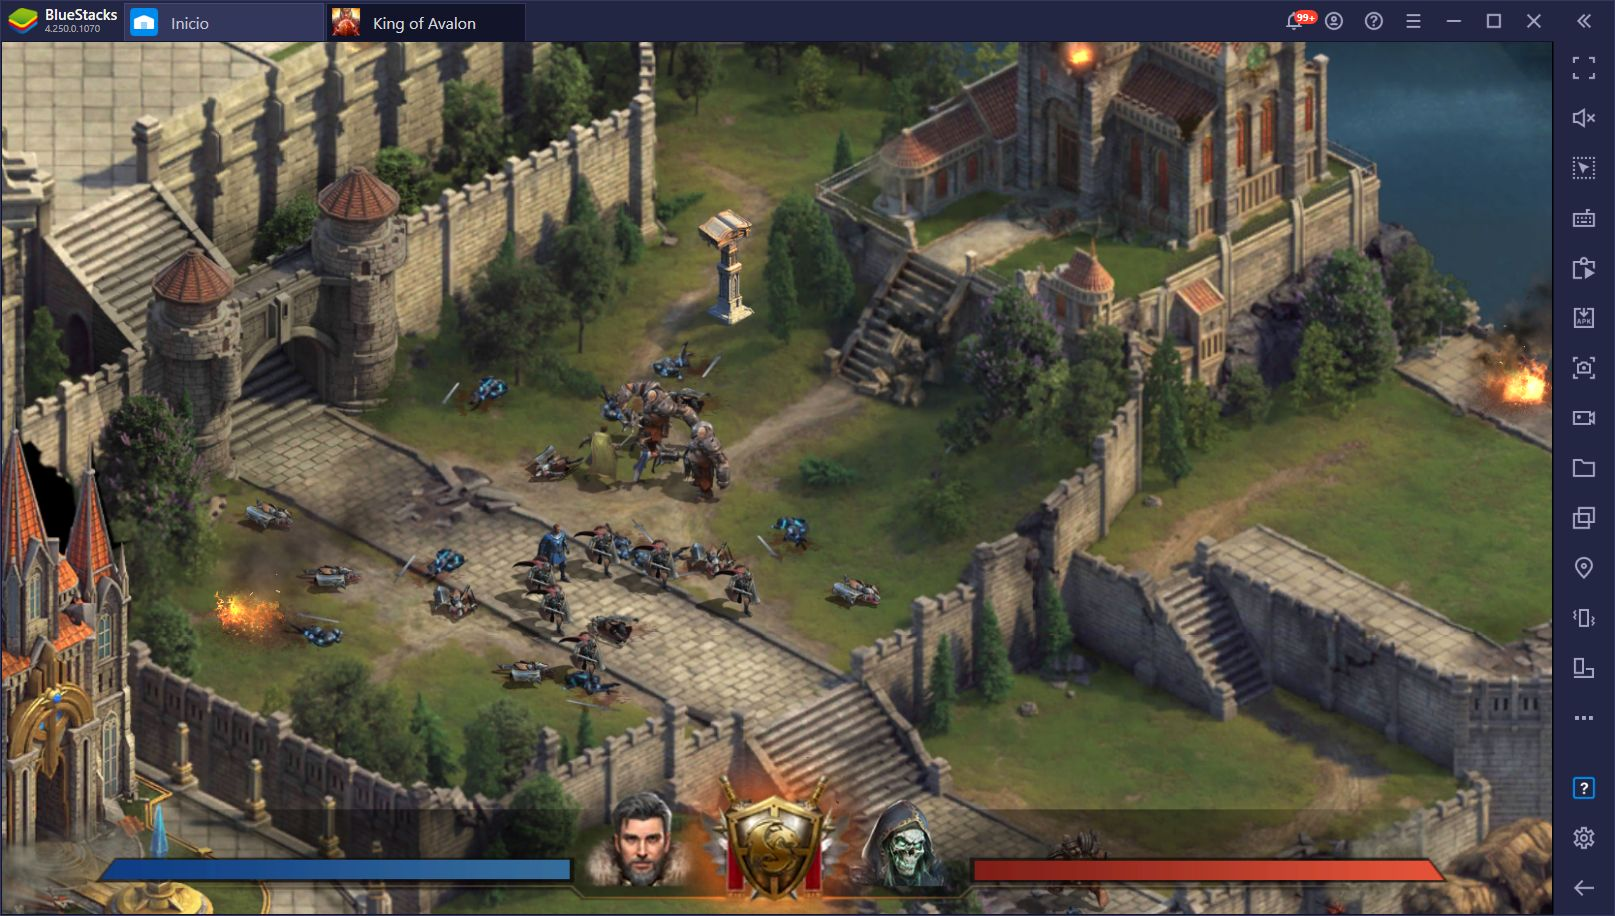 Cómo Jugar King of Avalon en PC con BlueStacks